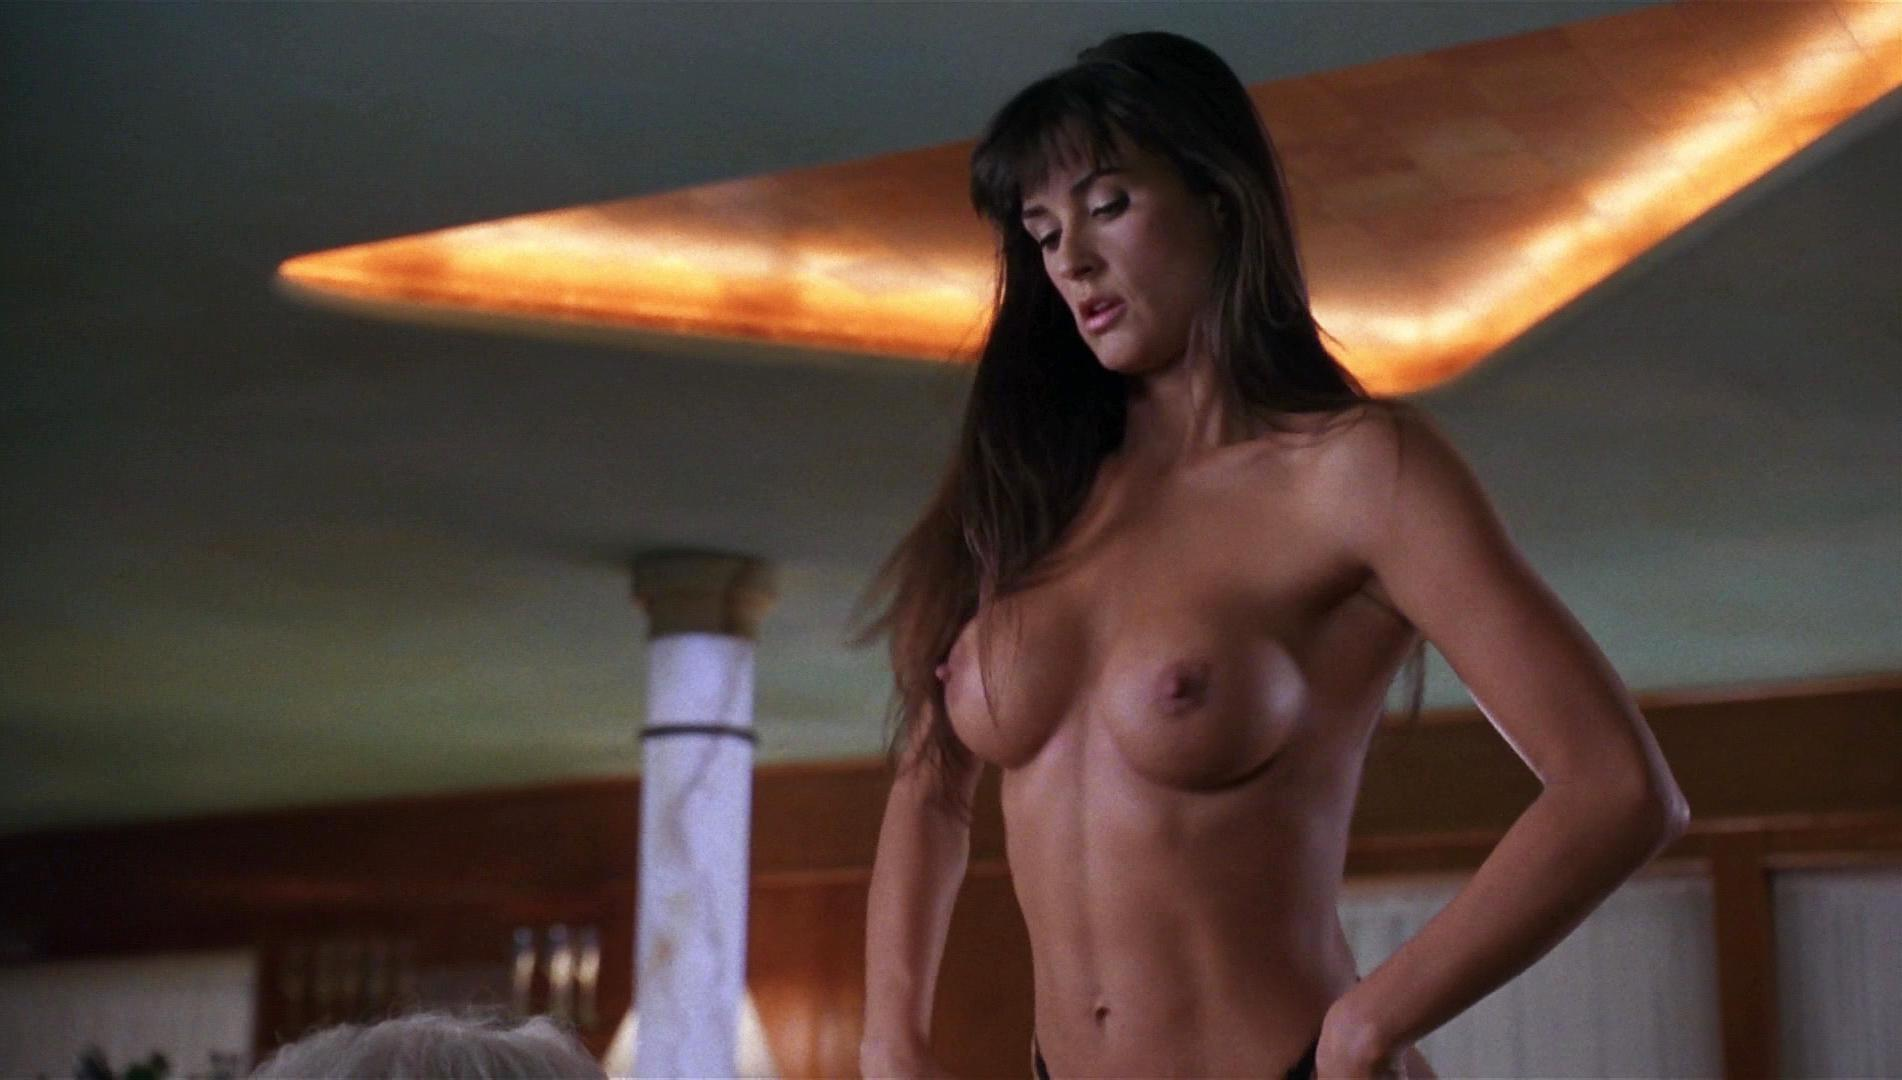 Nude Video Celebs  Demi Moore Nude - Striptease 1996-4267